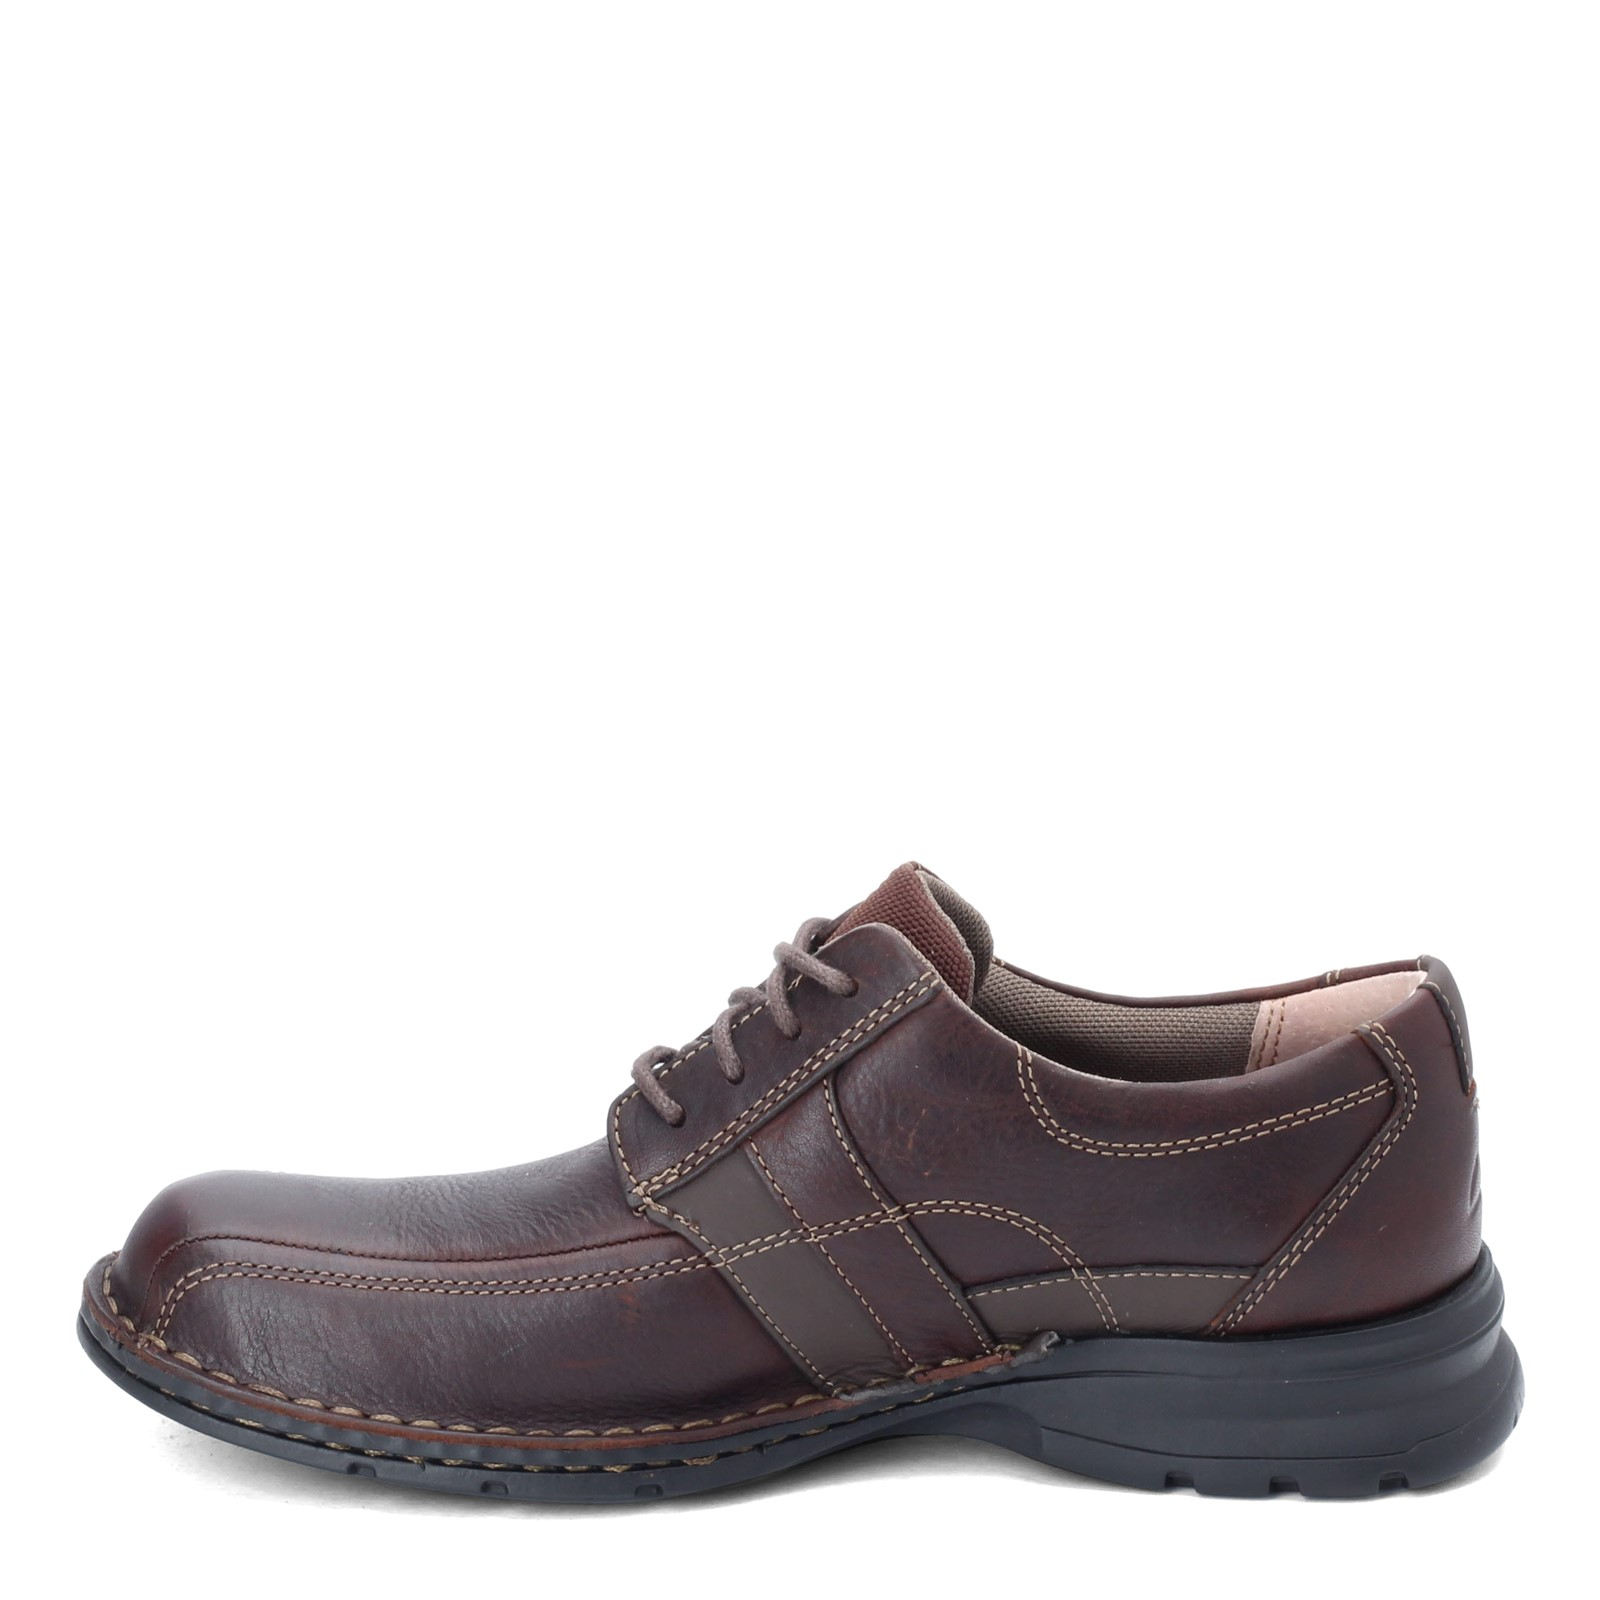 76cf3628c0a2b Home; Men's CLARKS, ESPACE LACE UP SHOES. Previous